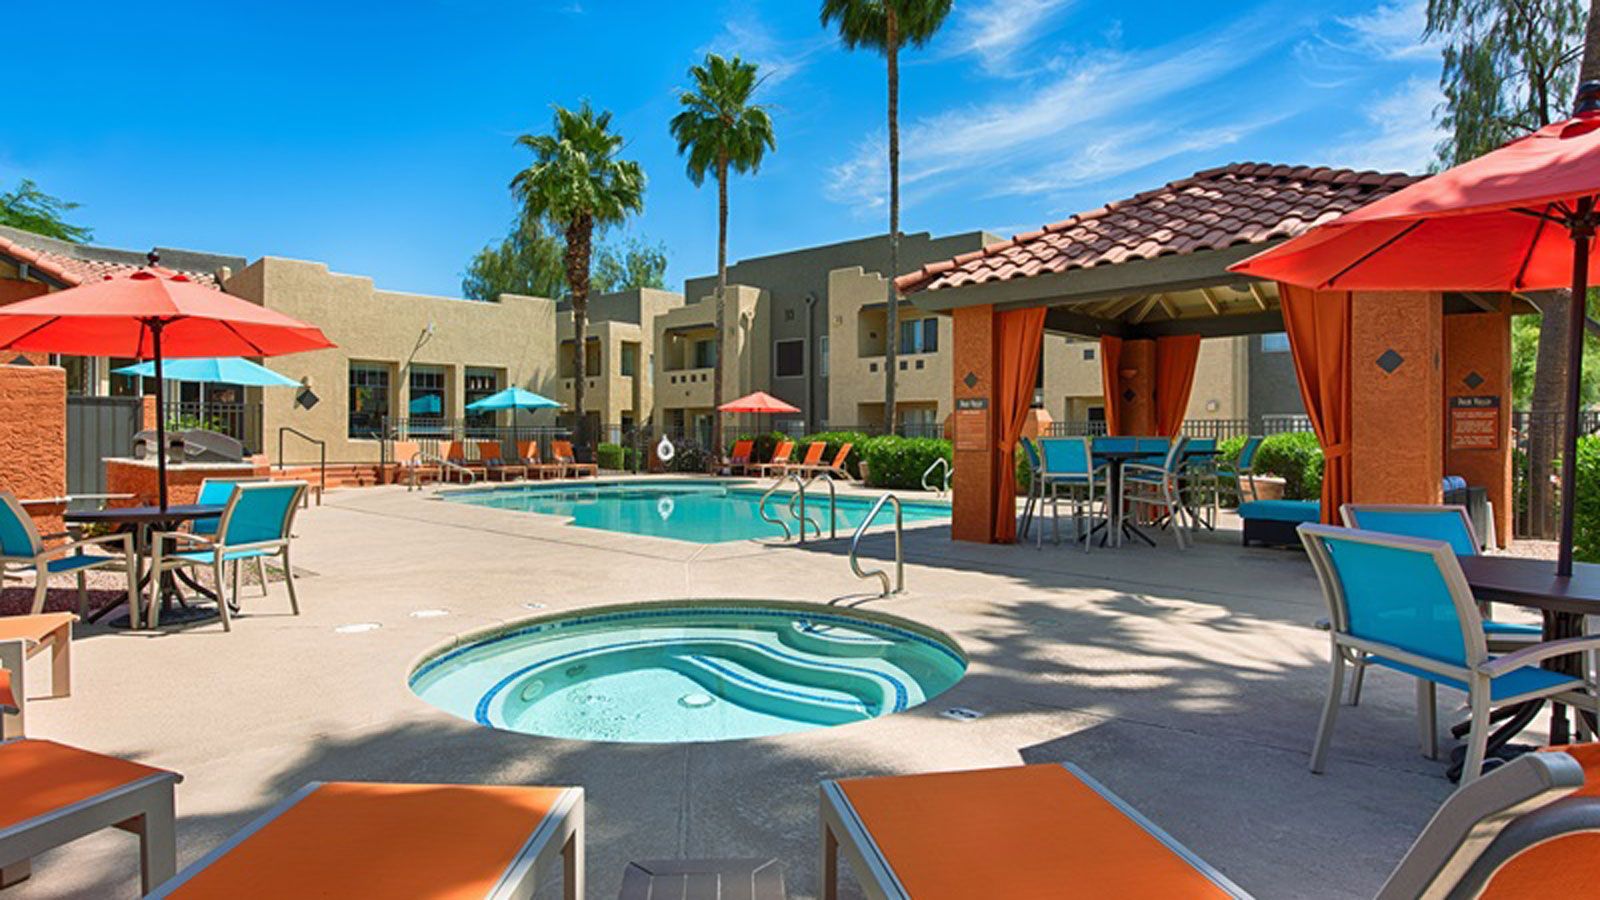 Palm Valley Apartment Homes | 1891 North Litchfield Road, Goodyear, AZ 85395 | 264 Units | Built: 1997/98 | $41,000,000 | $155,303/Unit | $145.98/SF